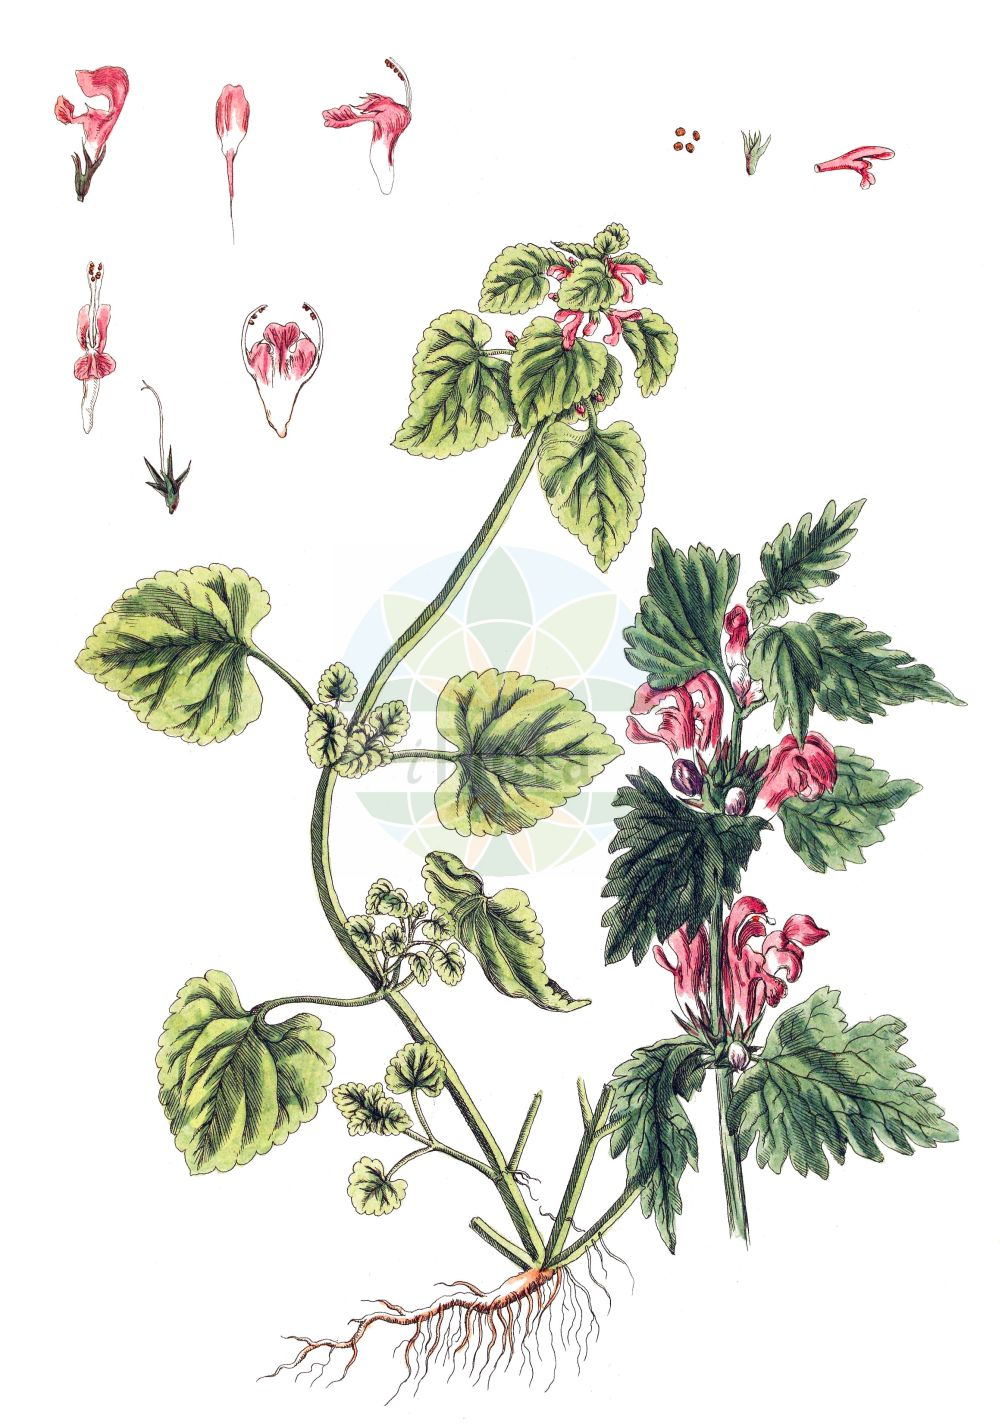 Historische Abbildung von Lamium maculatum (Gefleckte Taubnessel - Spotted Dead-nettle). Das Bild zeigt Blatt, Bluete, Frucht und Same. ---- Historical Drawing of Lamium maculatum (Gefleckte Taubnessel - Spotted Dead-nettle).The image is showing leaf, flower, fruit and seed.(Lamium maculatum,Gefleckte Taubnessel,Spotted Dead-nettle,Lamium affine,Lamium cardiaca,Lamium columnae,Lamium cupreum,Lamium dilatatum,Lamium elegantissimum,Lamium foliosum,Lamium grandiflorum,Lamium grenieri,Lamium gundelsheimeri,Lamium hirsutum,Lamium laevigatum,Lamium maculatum,Lamium melissifolium,Lamium mutabile,Lamium niveum,Lamium pallidiflorum,Lamium rubrum,Lamium rugosum,Lamium stoloniferum,Lamium tillii,Lamium truncatum,Lamium villosifolium,Lamium vulgatum var. rubrum,Gefleckte Taubnessel,Spotted Dead-nettle,Spotted Henbit,Lamium,Taubnessel,Deadnettle,Lamiaceae,Lippenbluetengewaechse,Lippenbluetler,Nettle family,Blatt,Bluete,Frucht,Same,leaf,flower,fruit,seed,Blackwell (1750-1773))